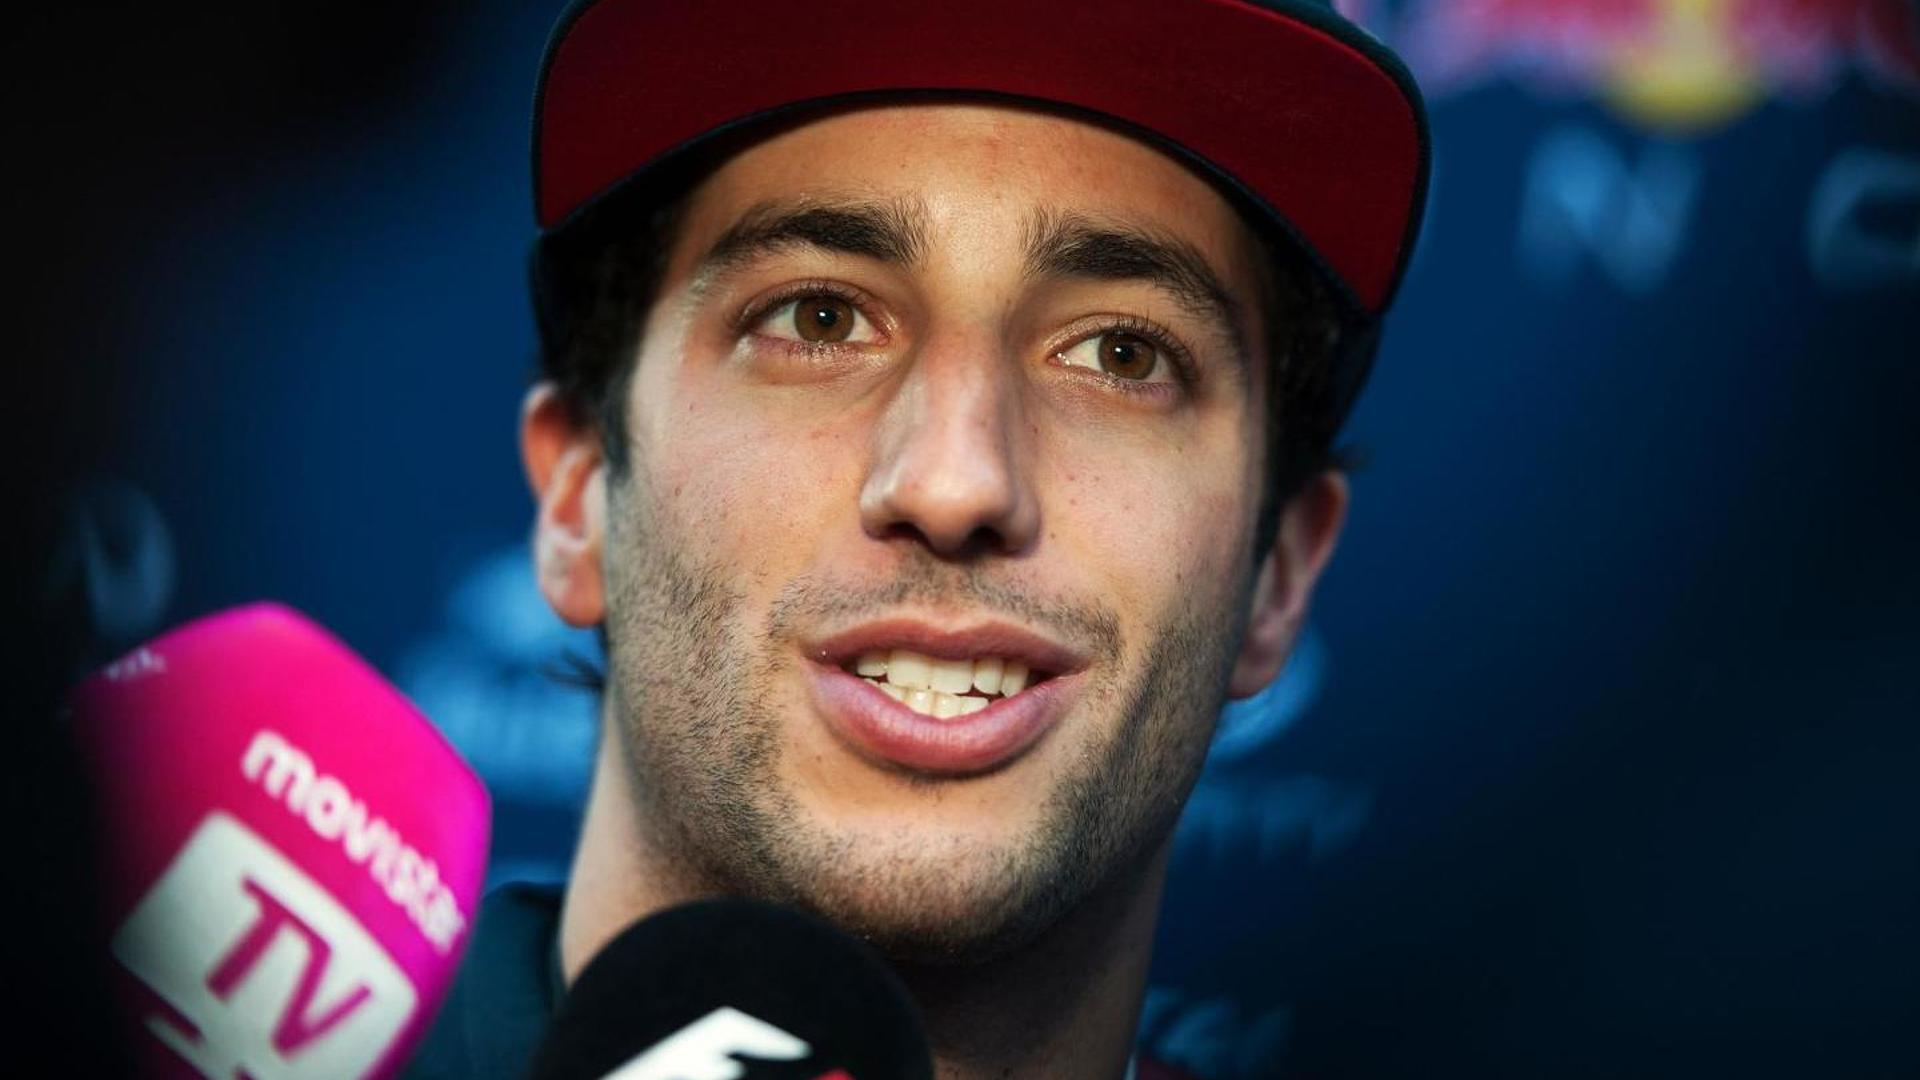 Mercedes in 'another dimension' - Ricciardo